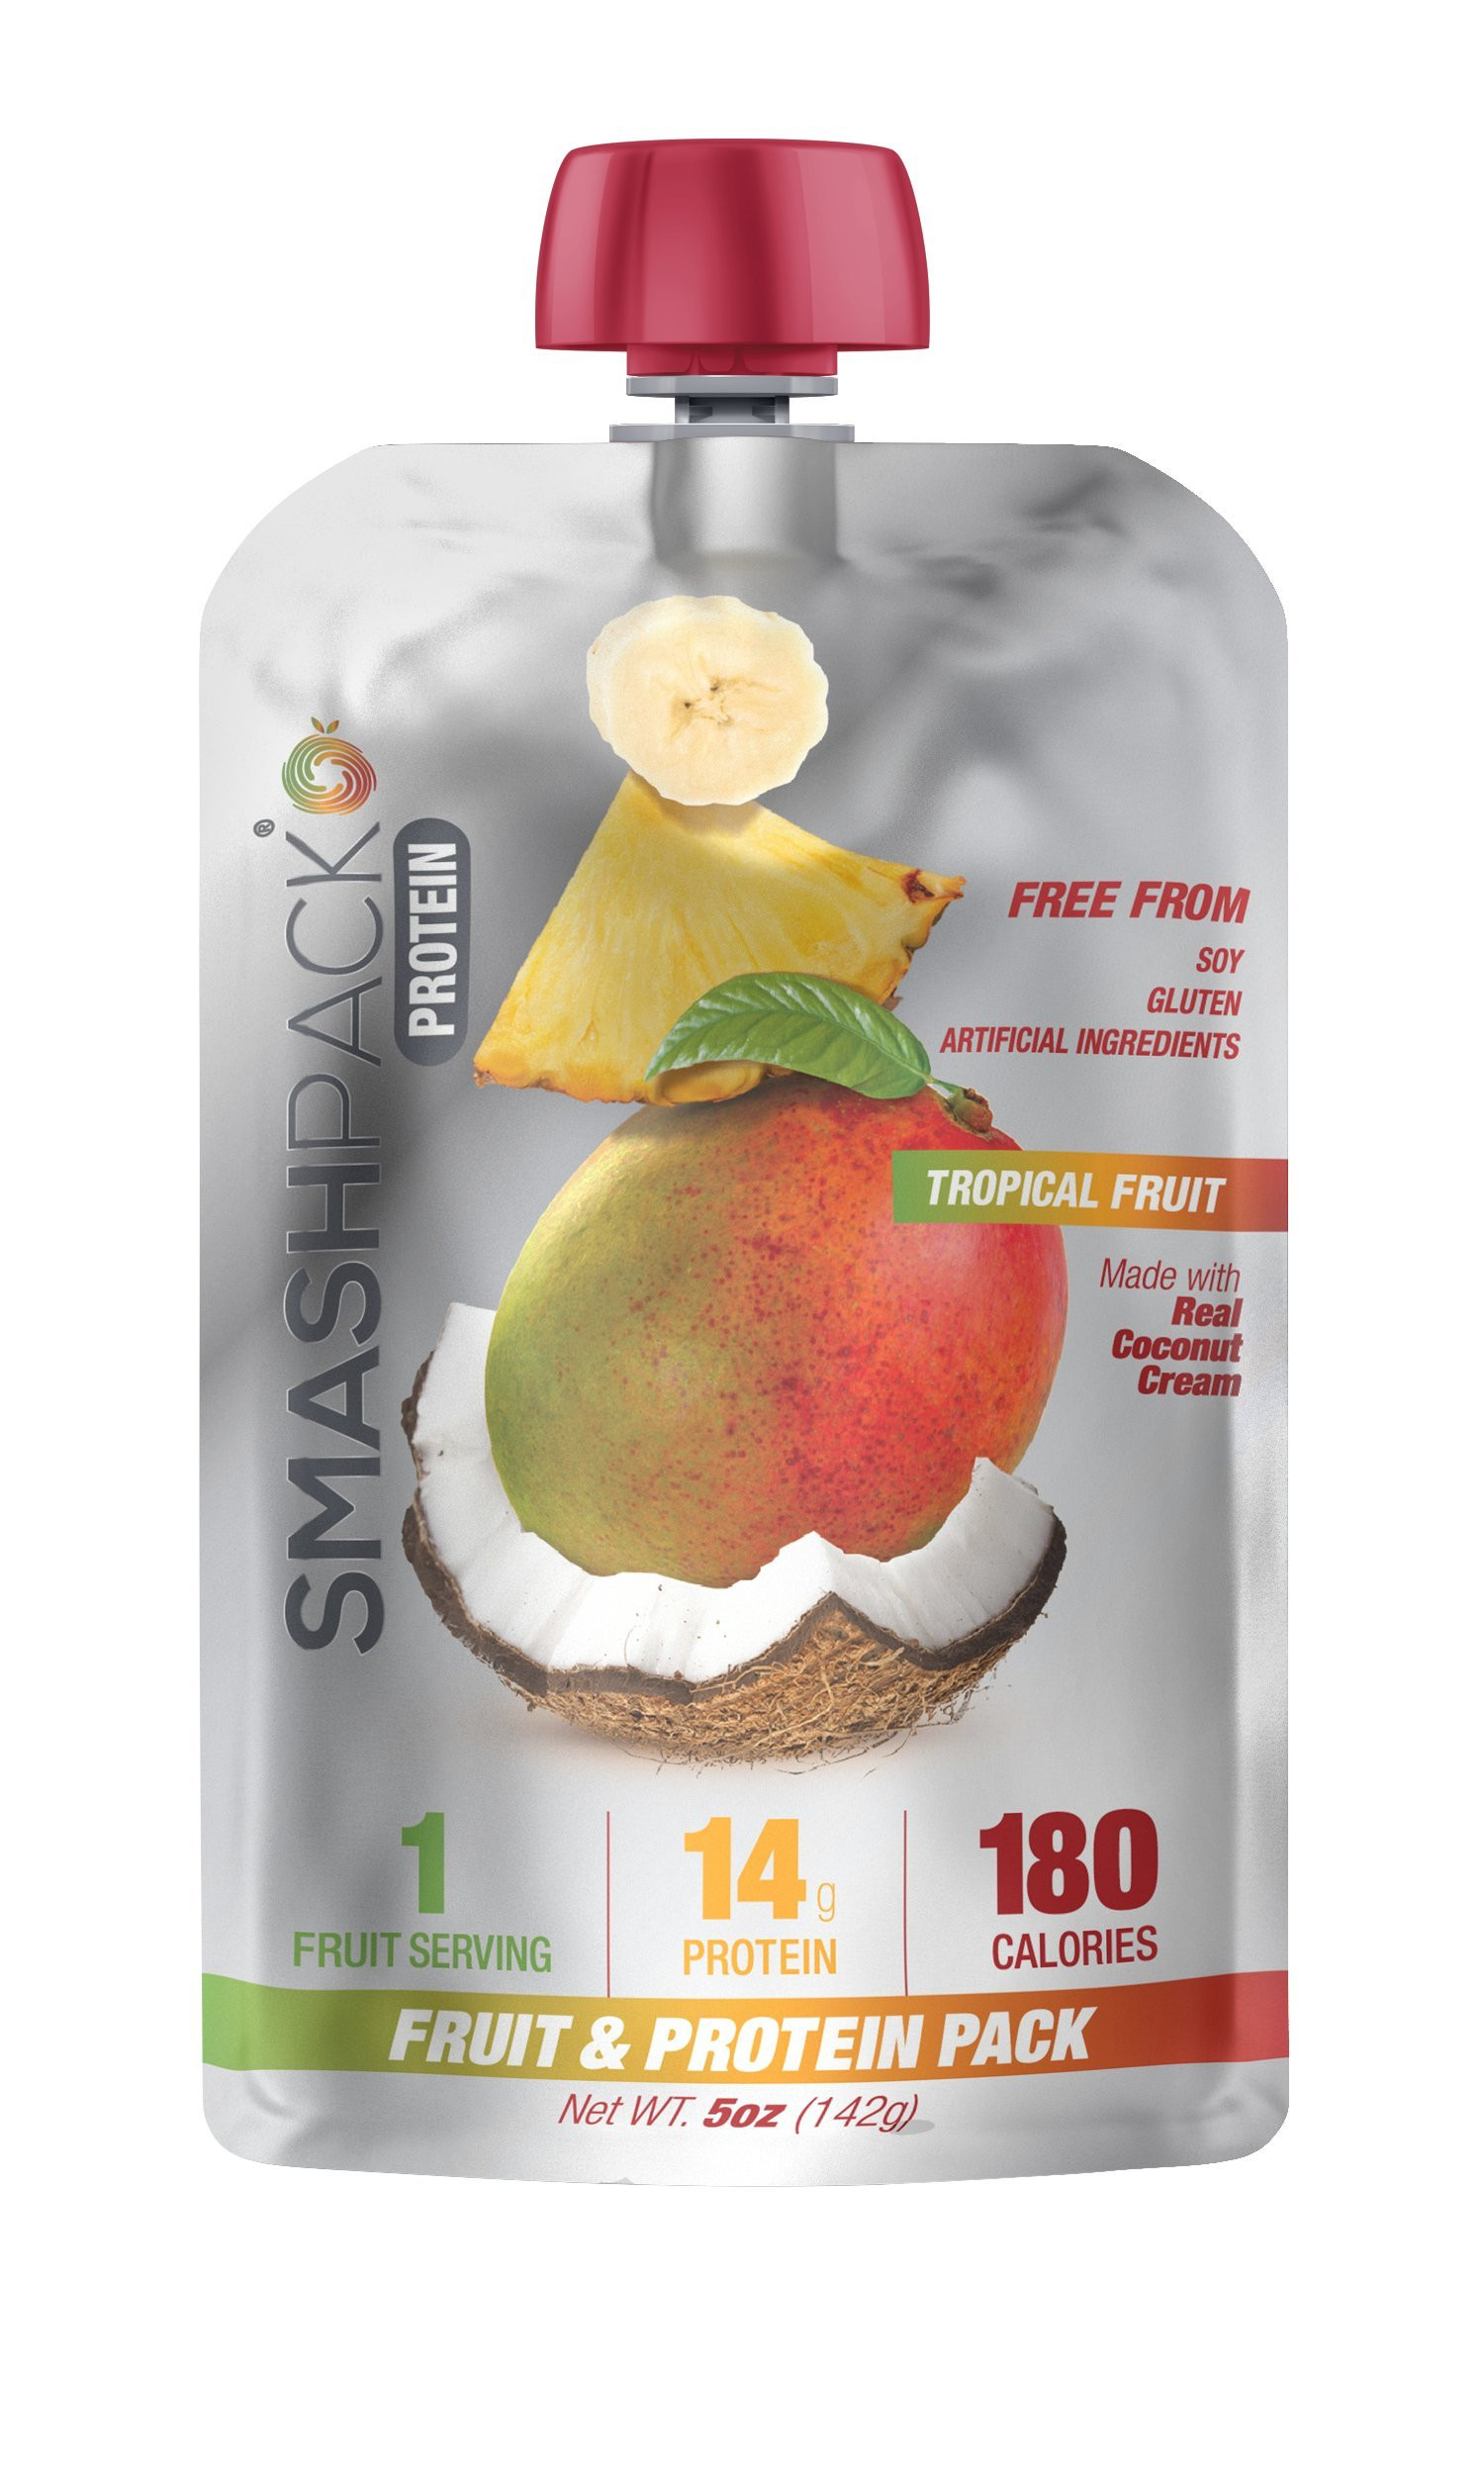 SmashPack Real Fruit and Protein Smoothie Squeeze Snack – Soy Free Gluten Free No